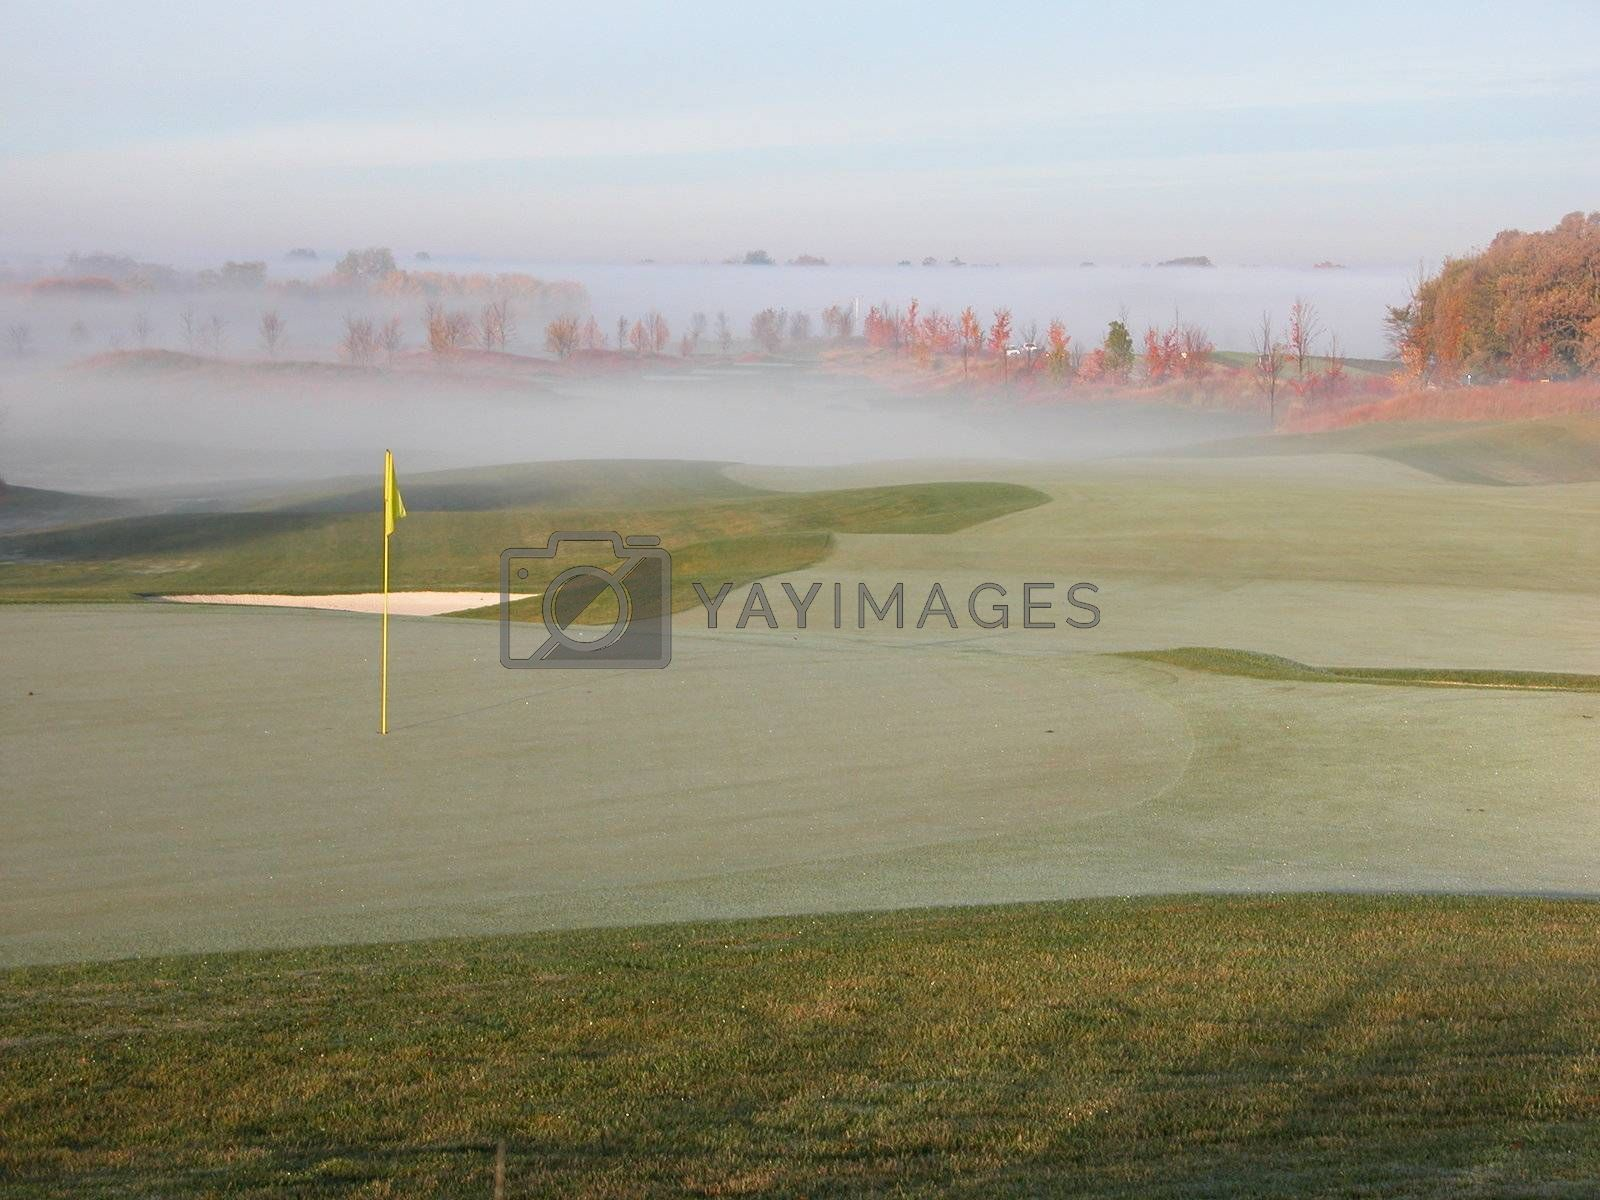 Royalty free image of Steamy Golf Course by ewilliamsdesign